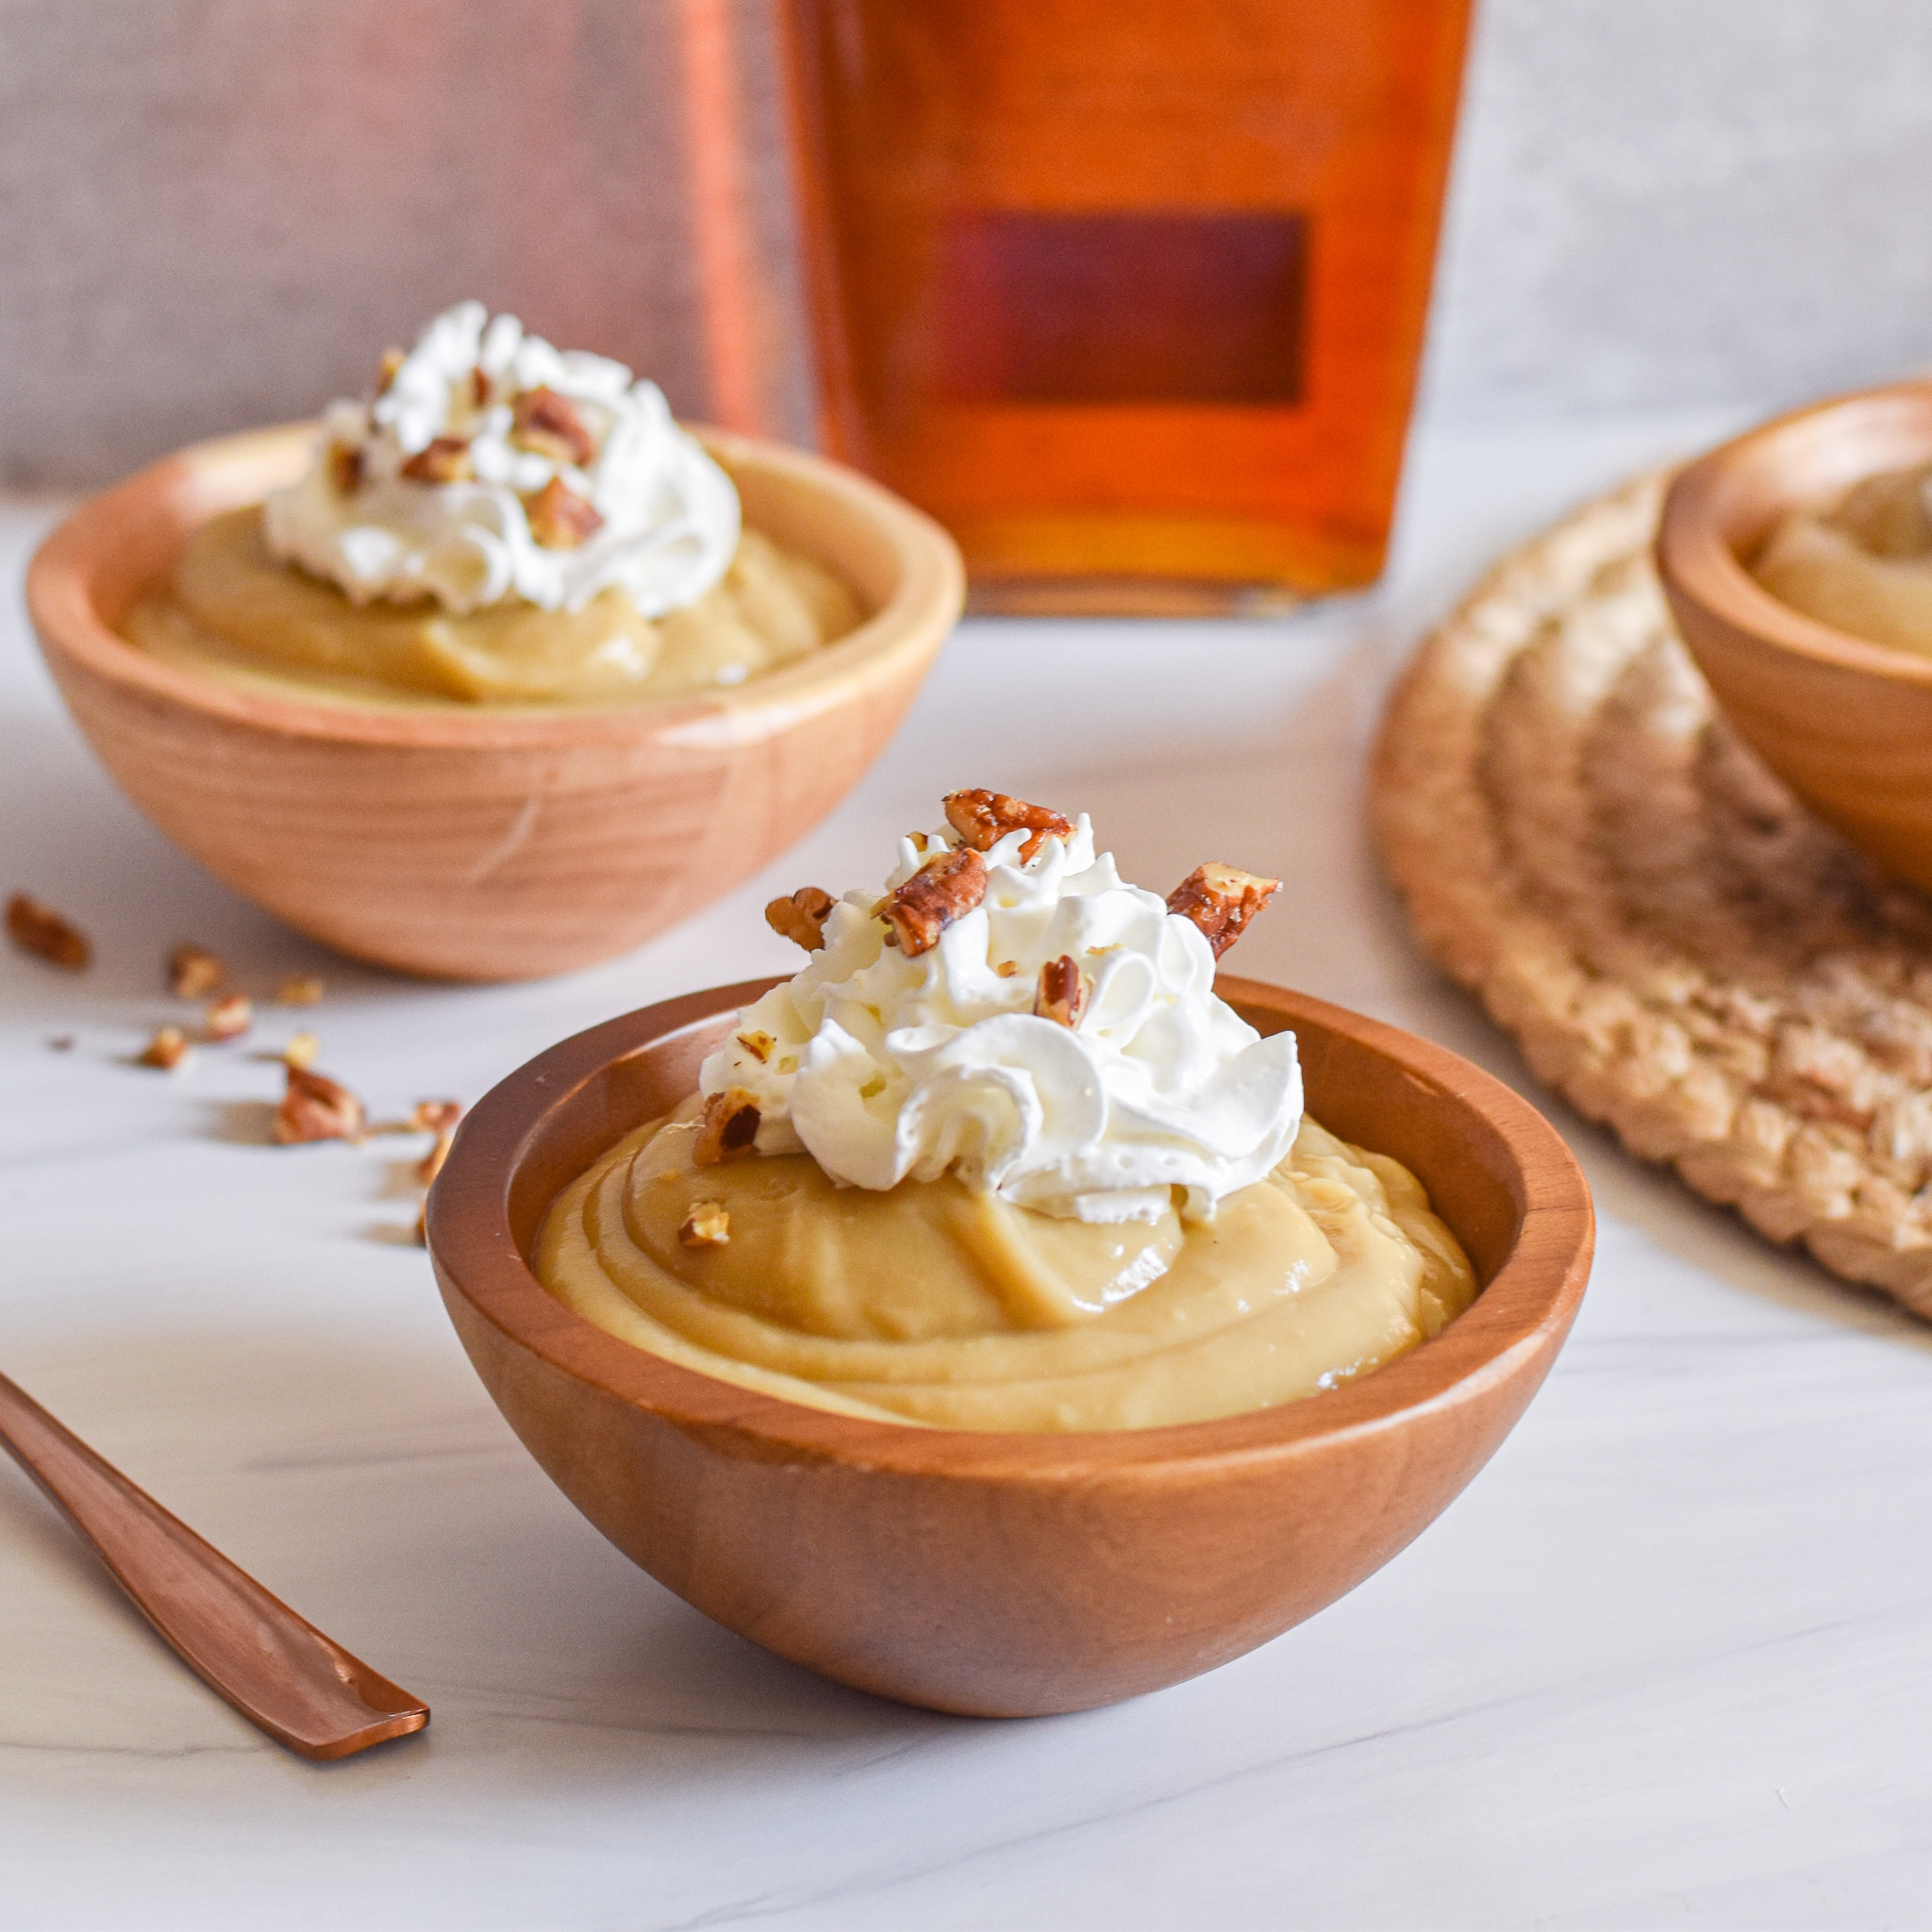 Authentic Butterscotch Pudding by Candidly Delicious